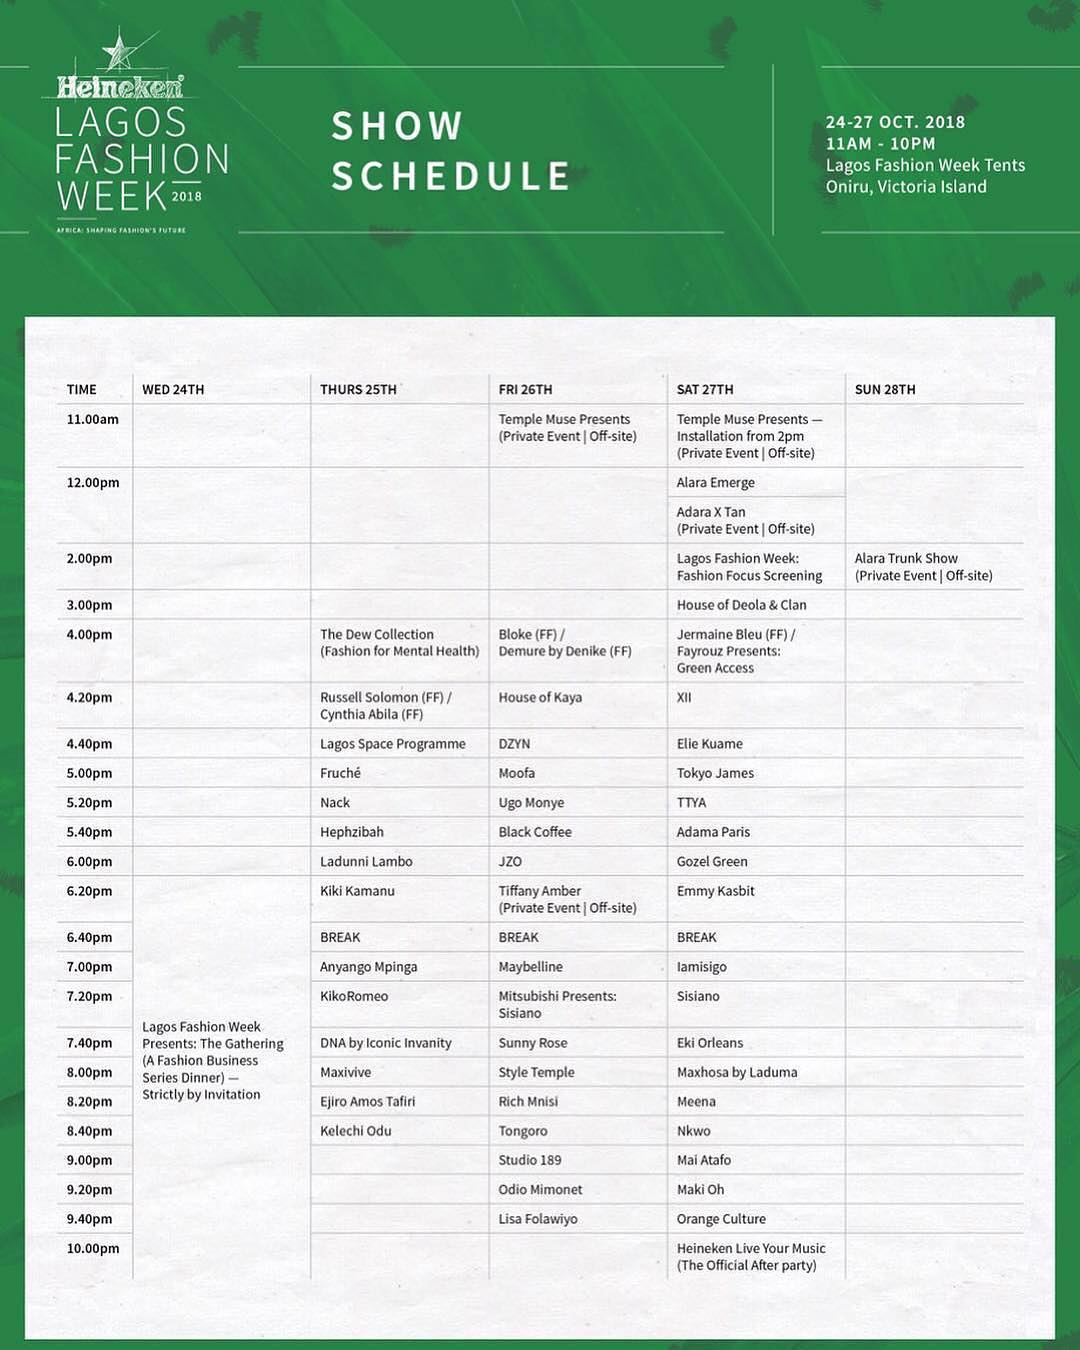 Here Are Is The Full Schedule And 49 Designers Showcasing At Lagos Fashion Week 2018